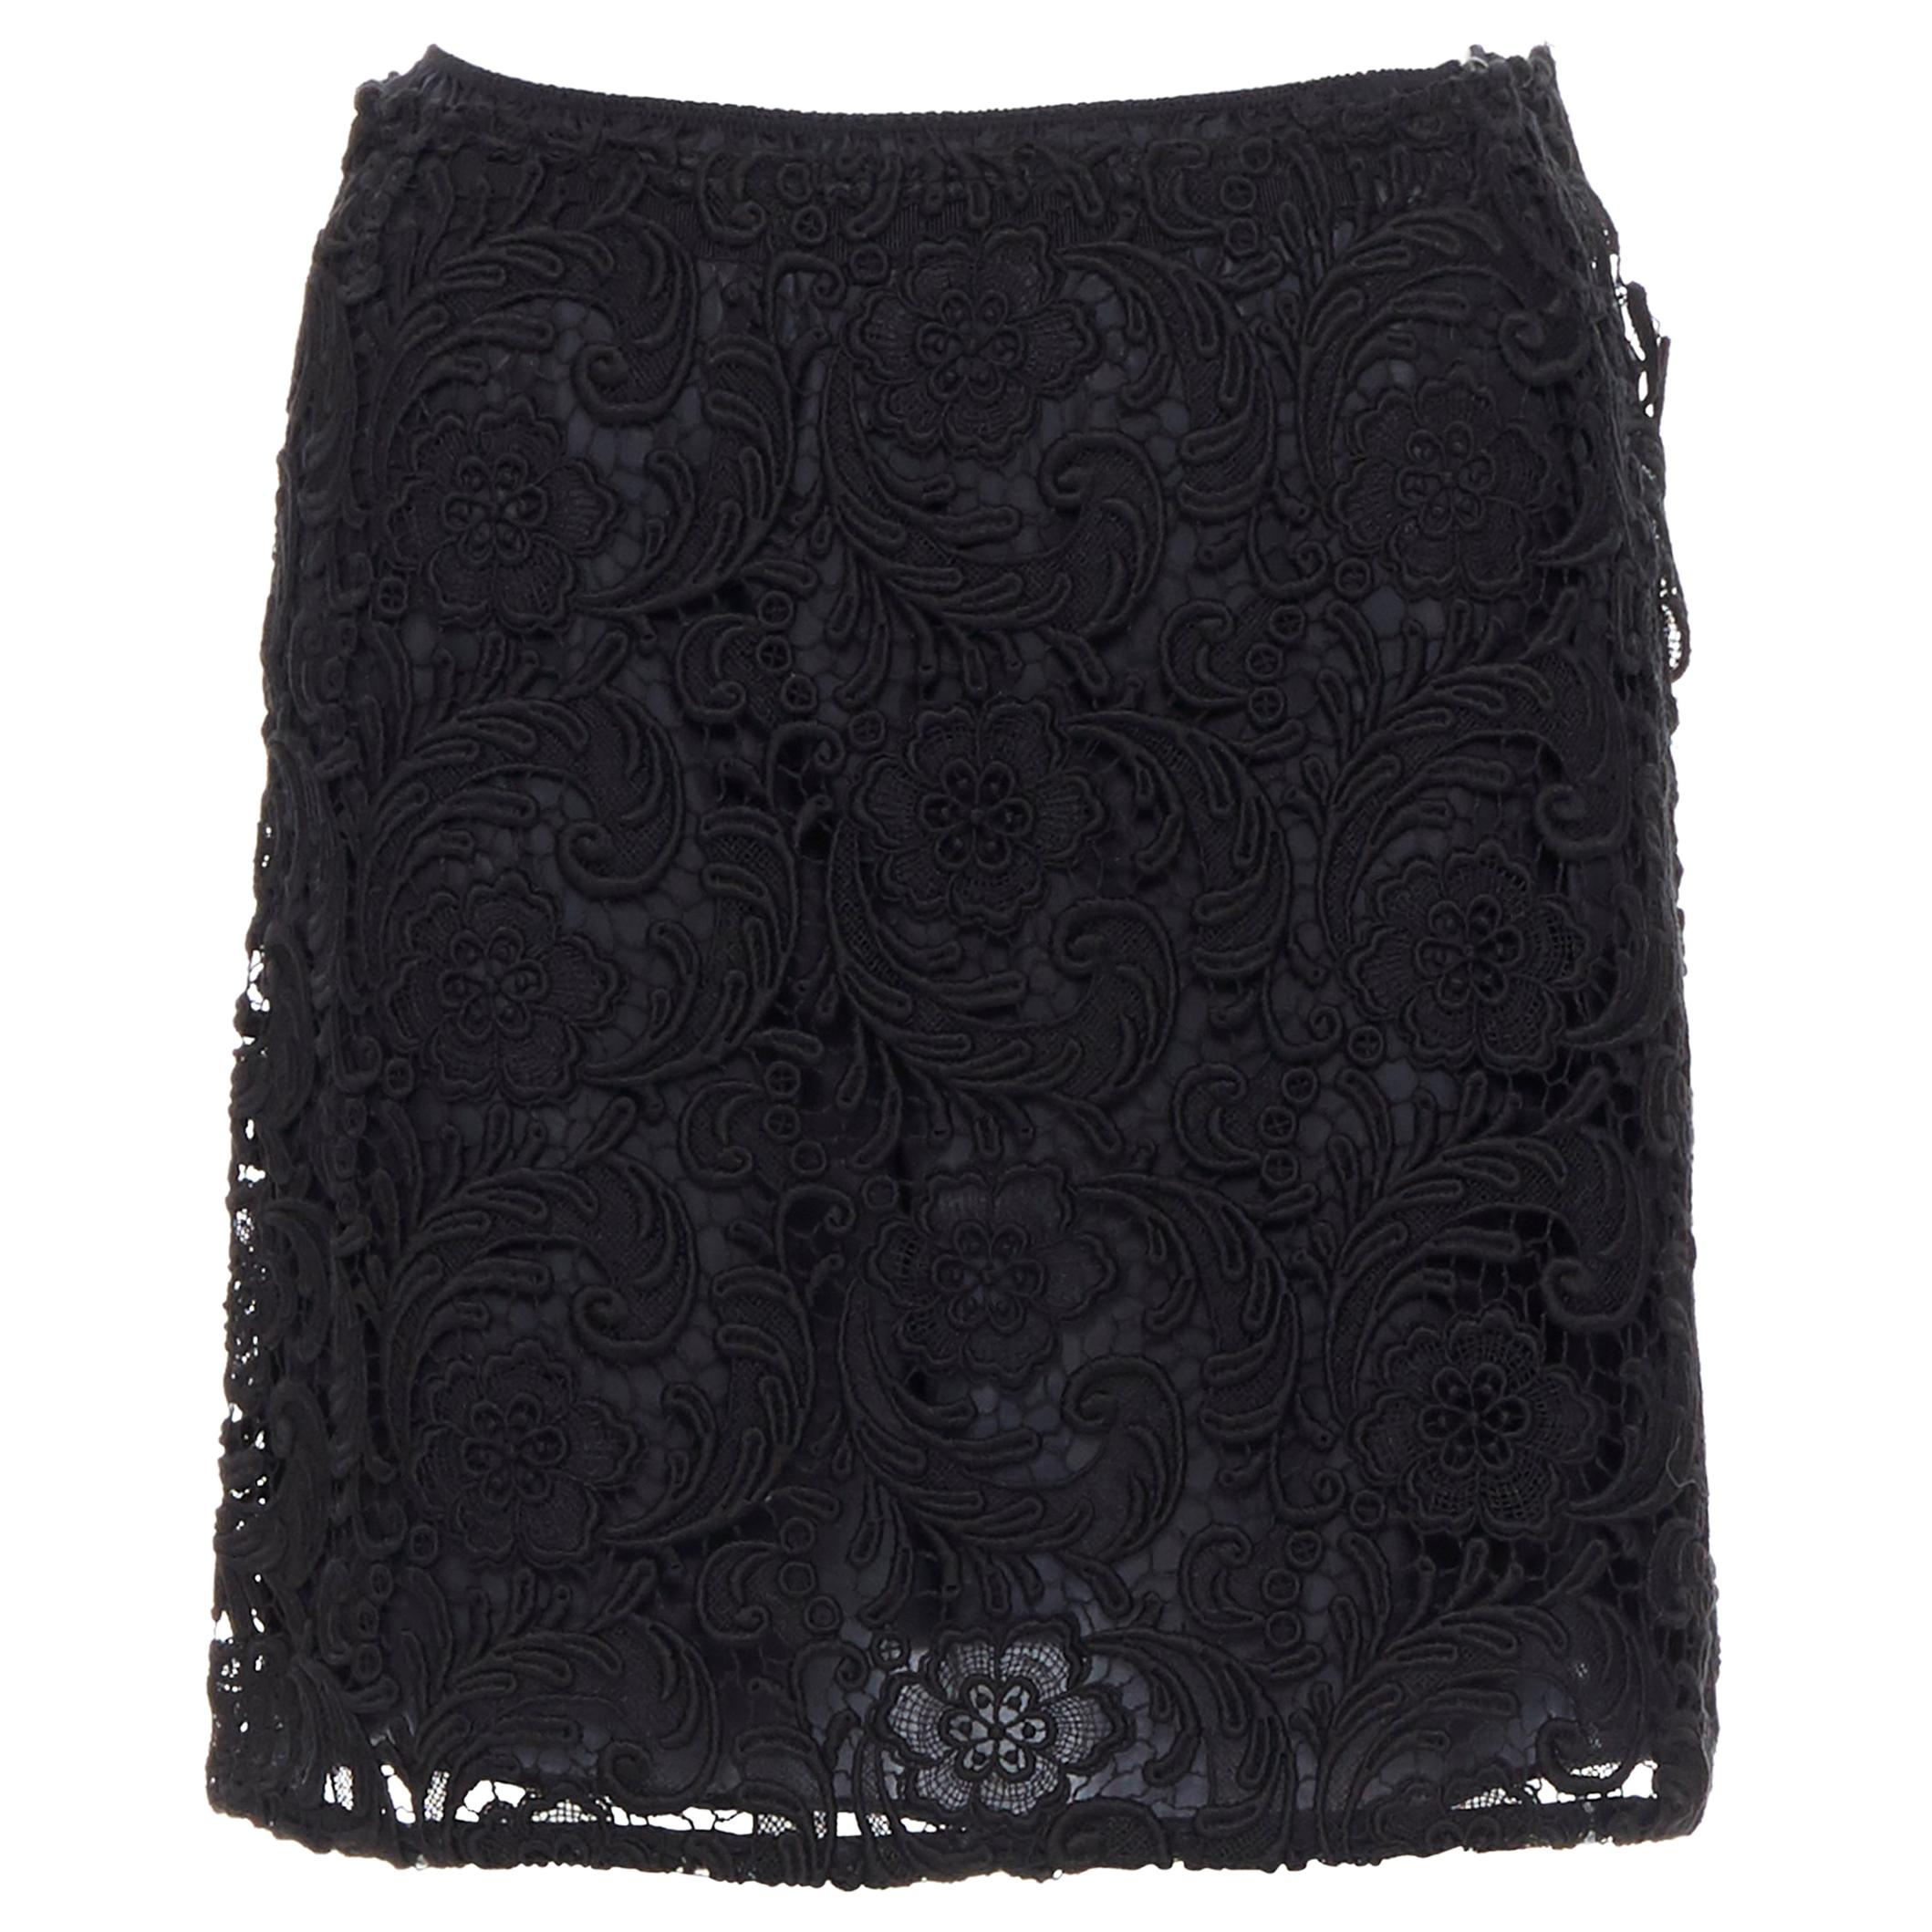 PRADA 2008 iconic floral embroidery lace black silk lined mini skirt IT38 XS